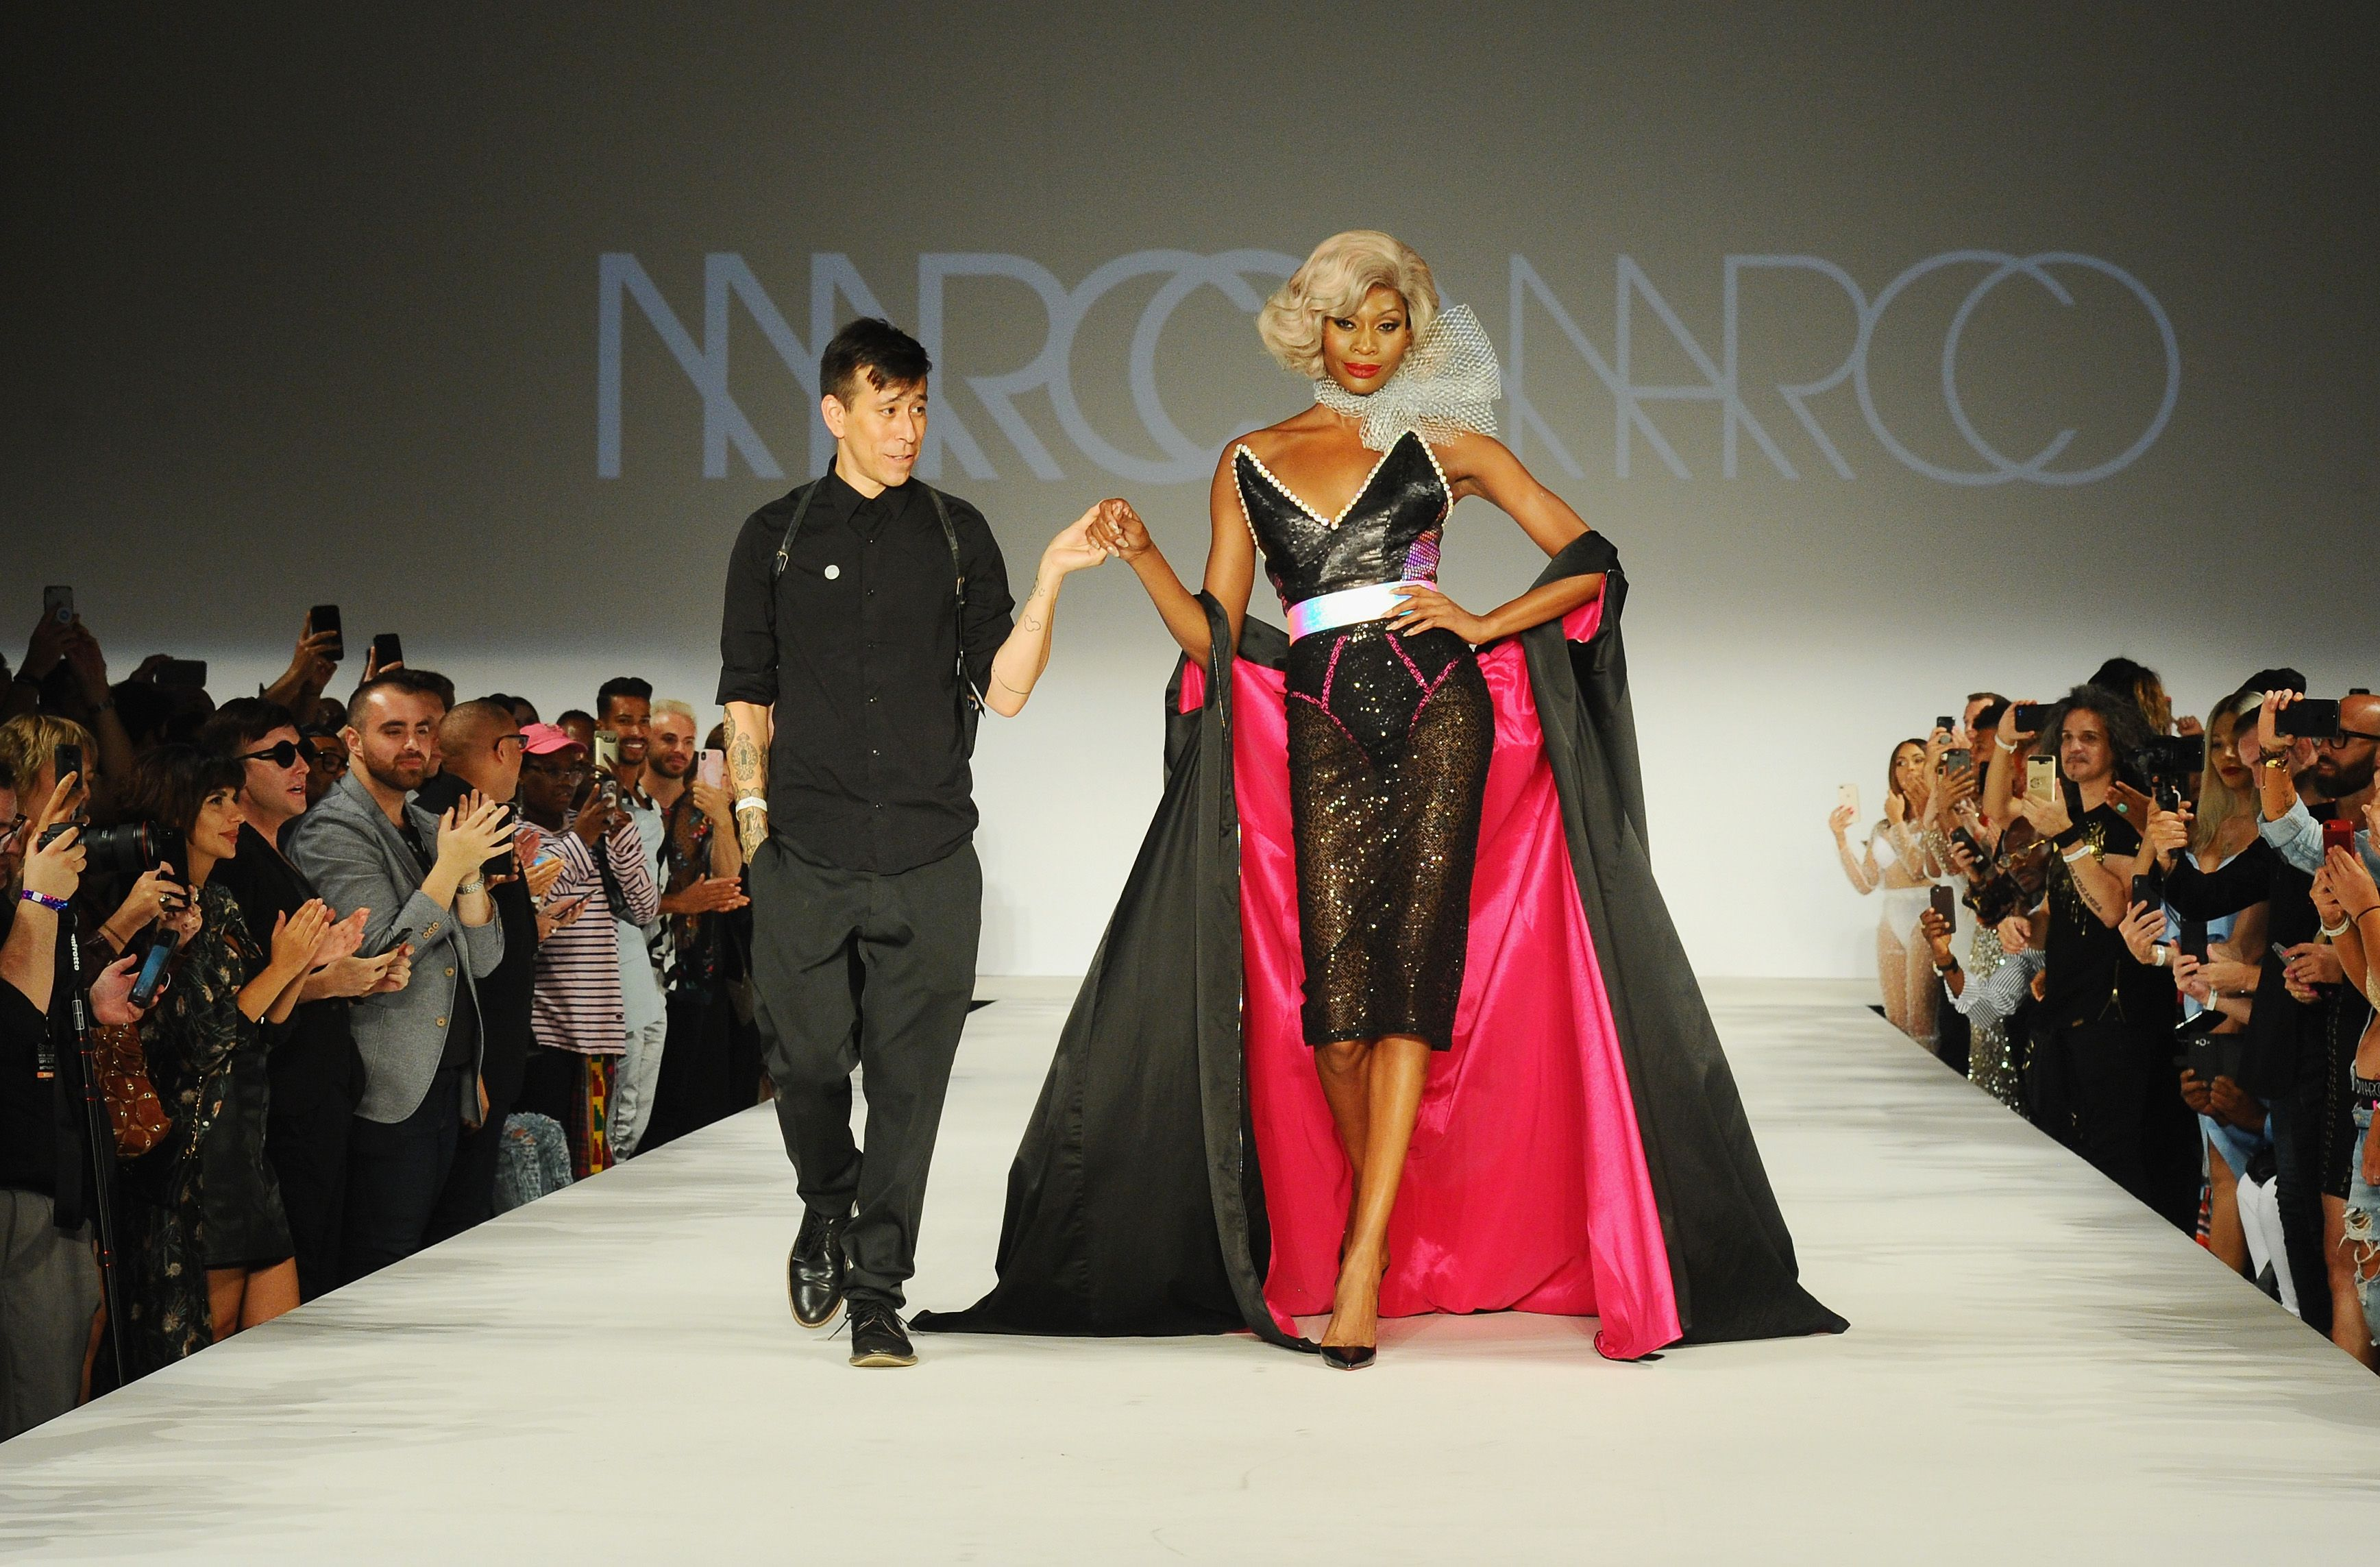 59a62ac378b3 The Marco Marco Runway Show Featured All Trans Models